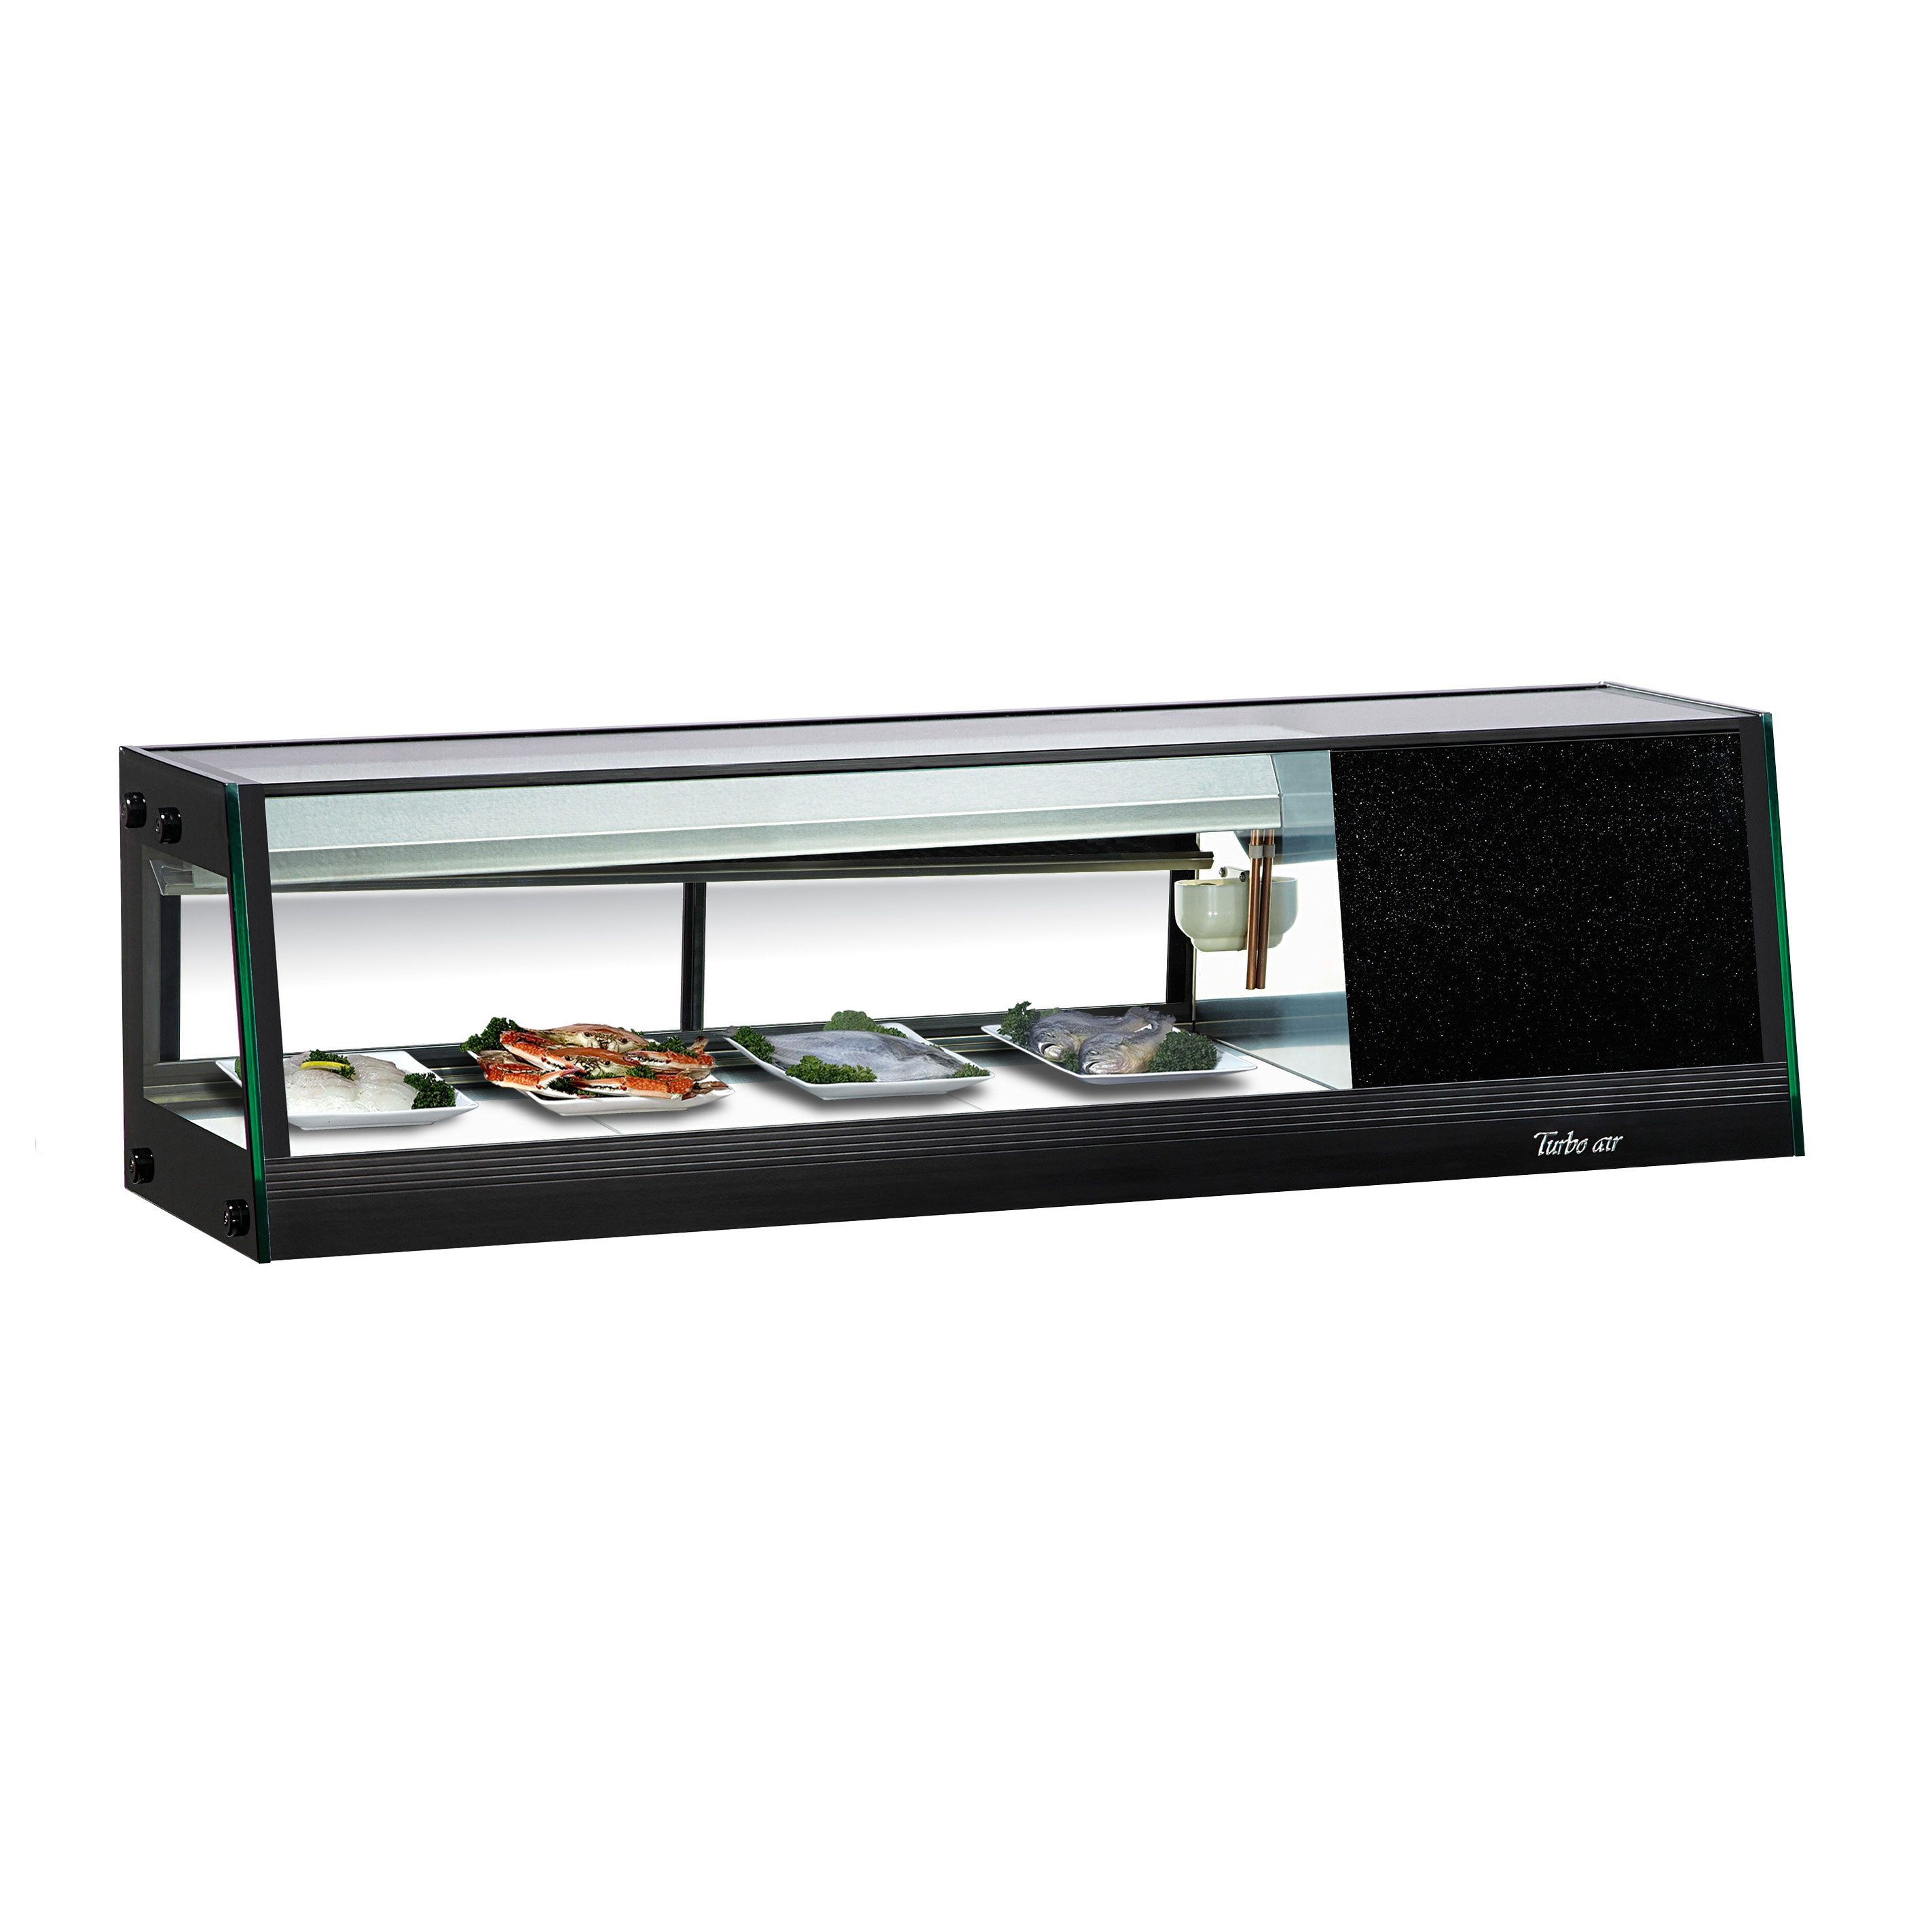 Turbo Air SAS-50R-N display case, refrigerated sushi